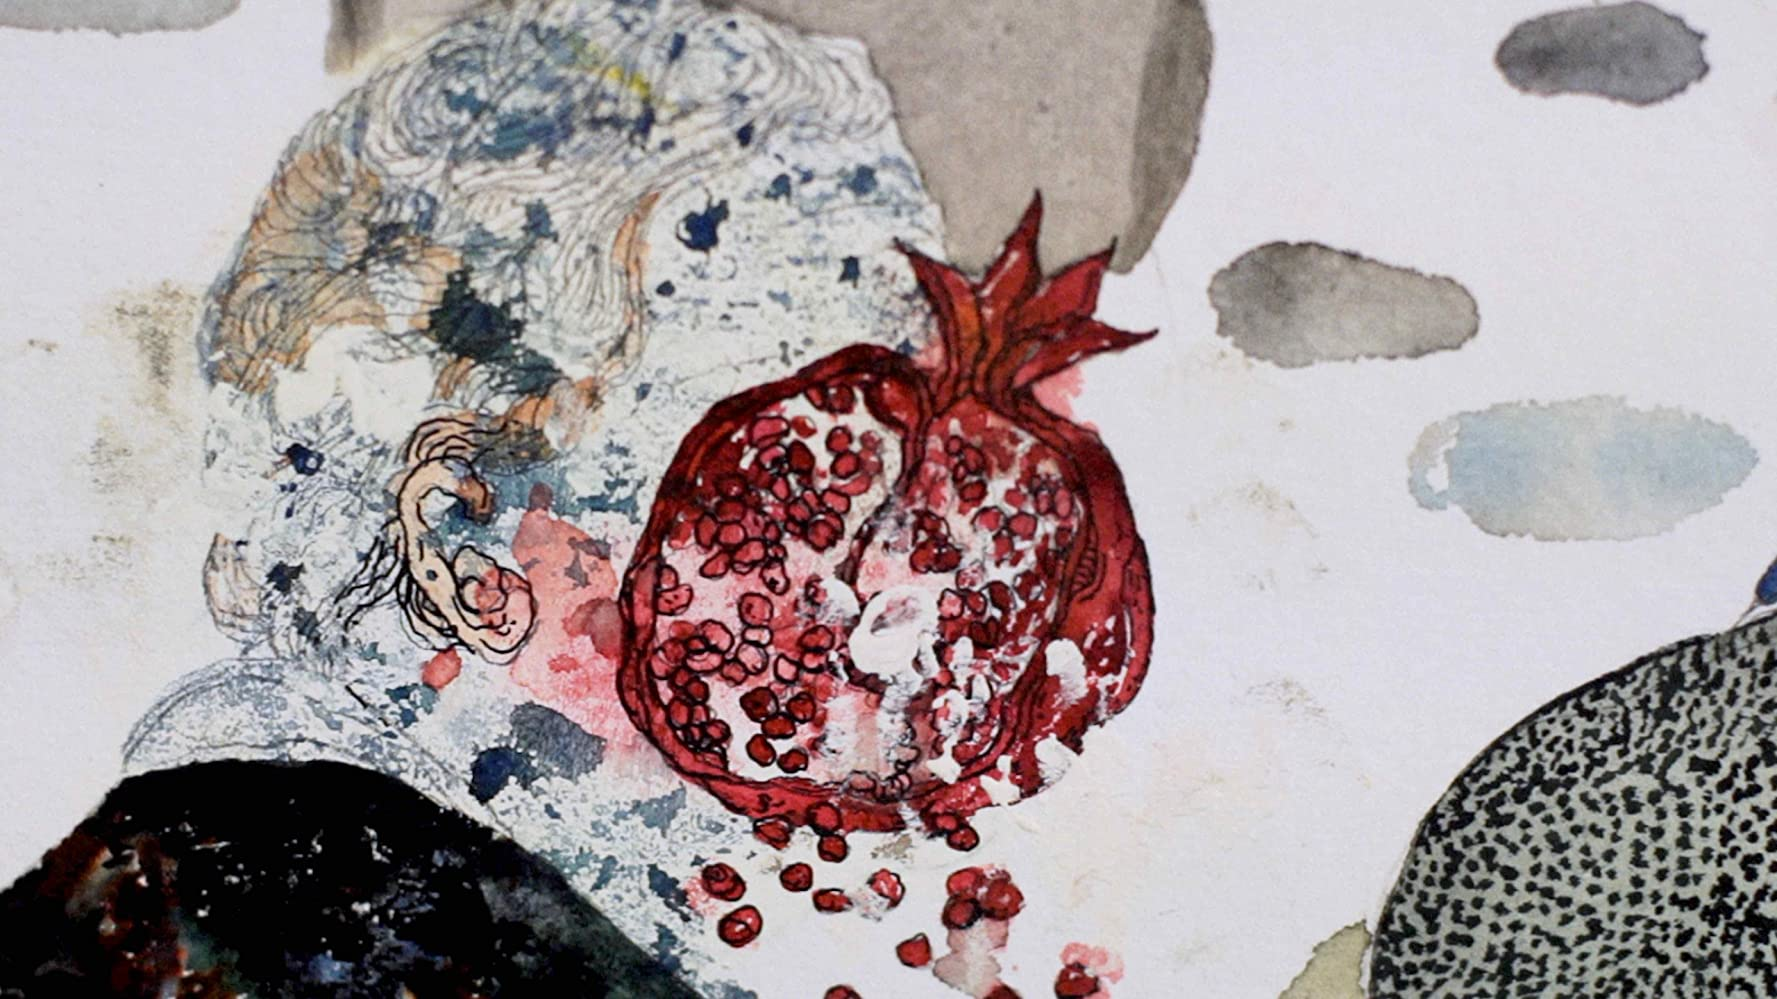 Stefanos Rokos- Nick Cave & The Bad Seeds' No More Shall We Part – 14 Paintings, 17 Years Later